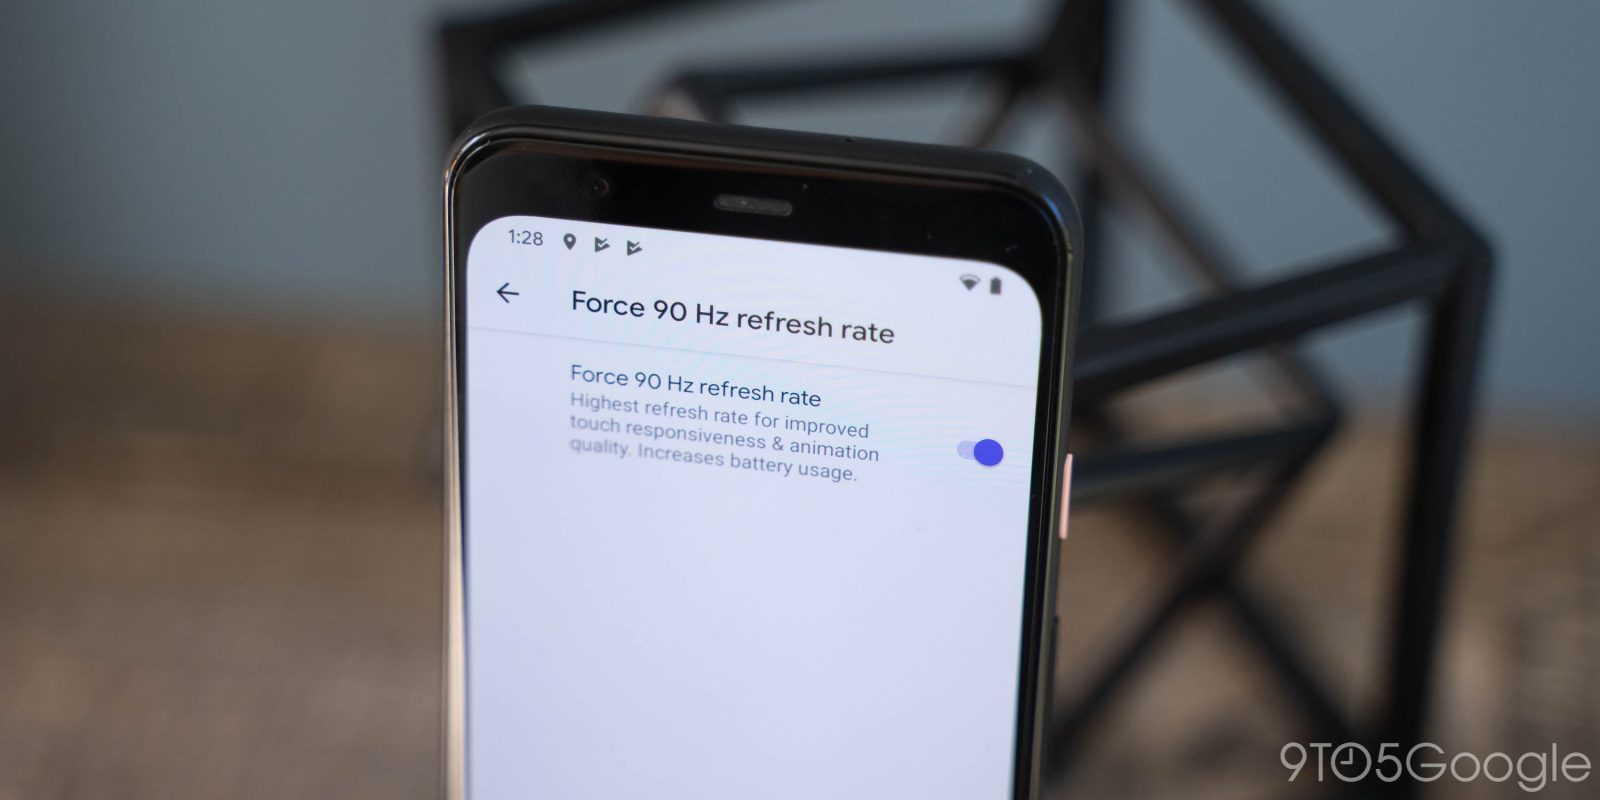 How to force 90 Hz refresh rate on Pixel 4 display at all times